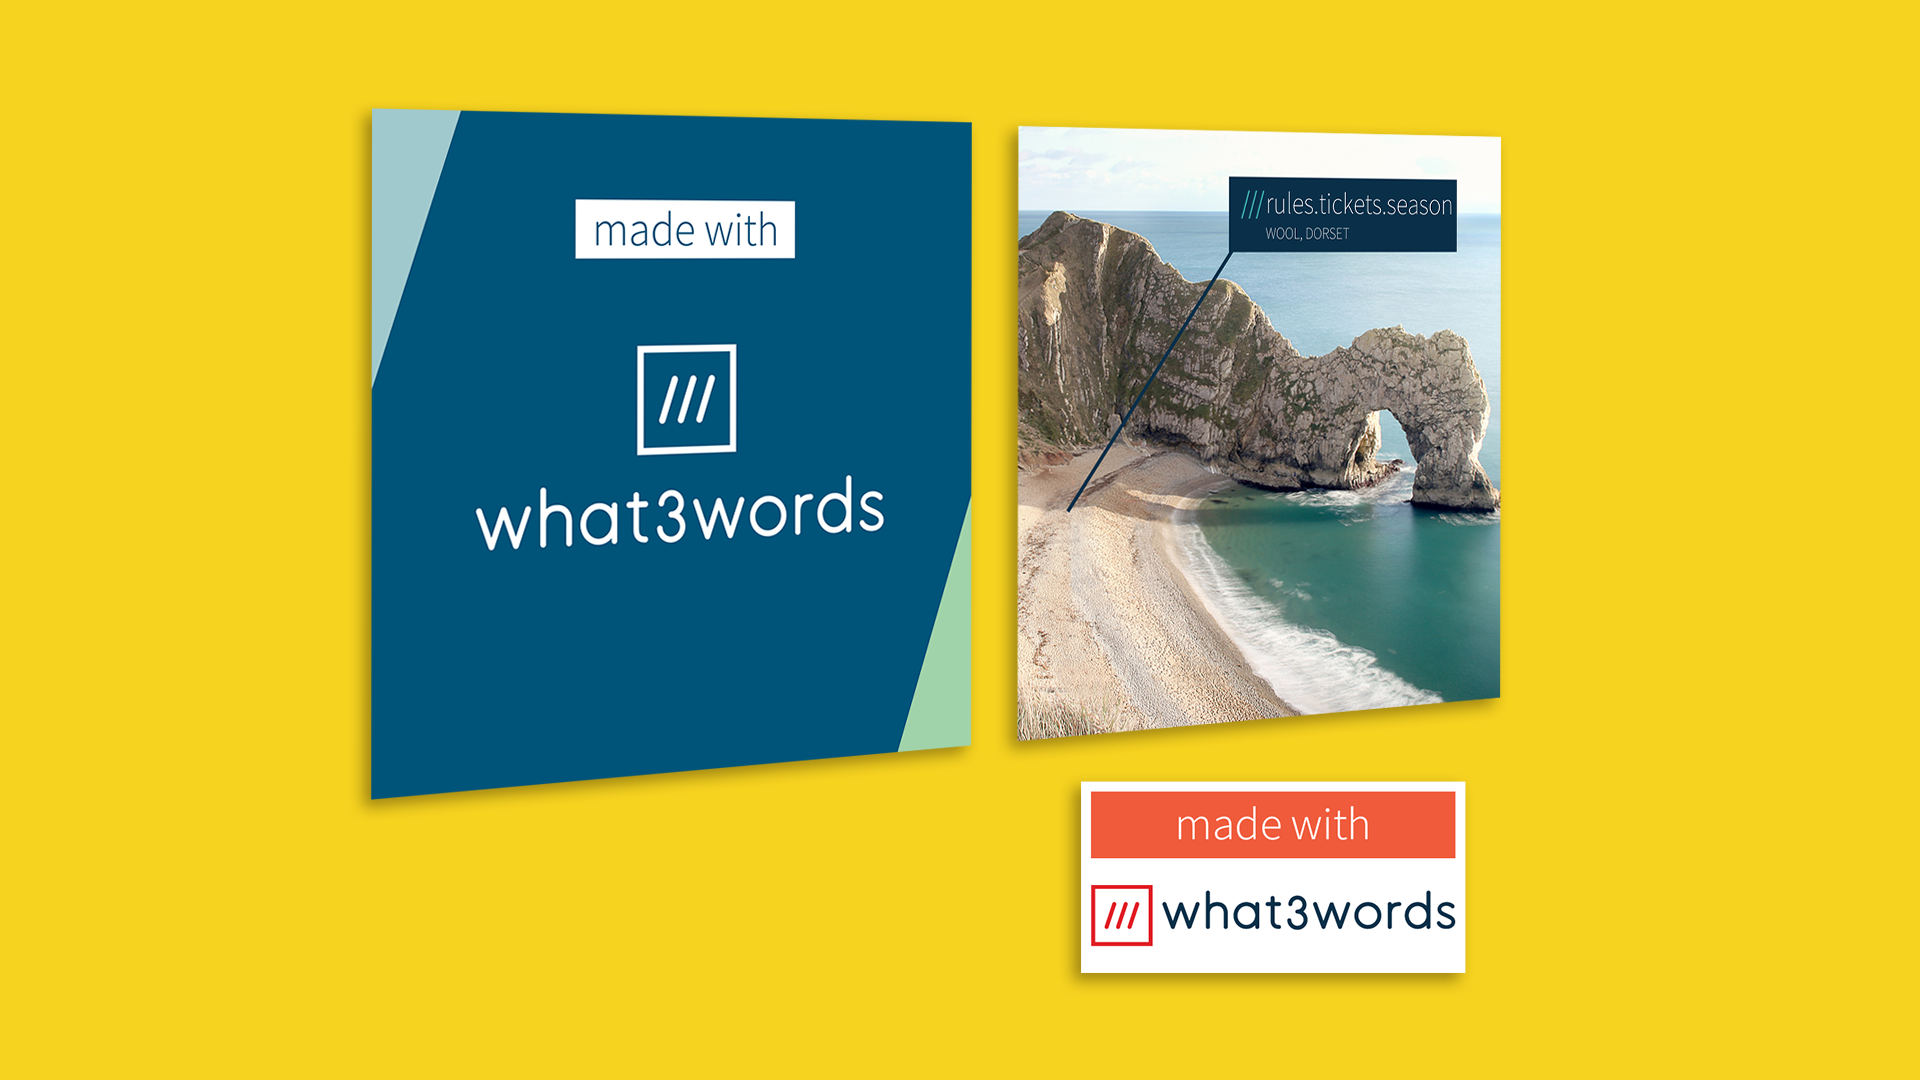 collage of images 'made with' what 3 words